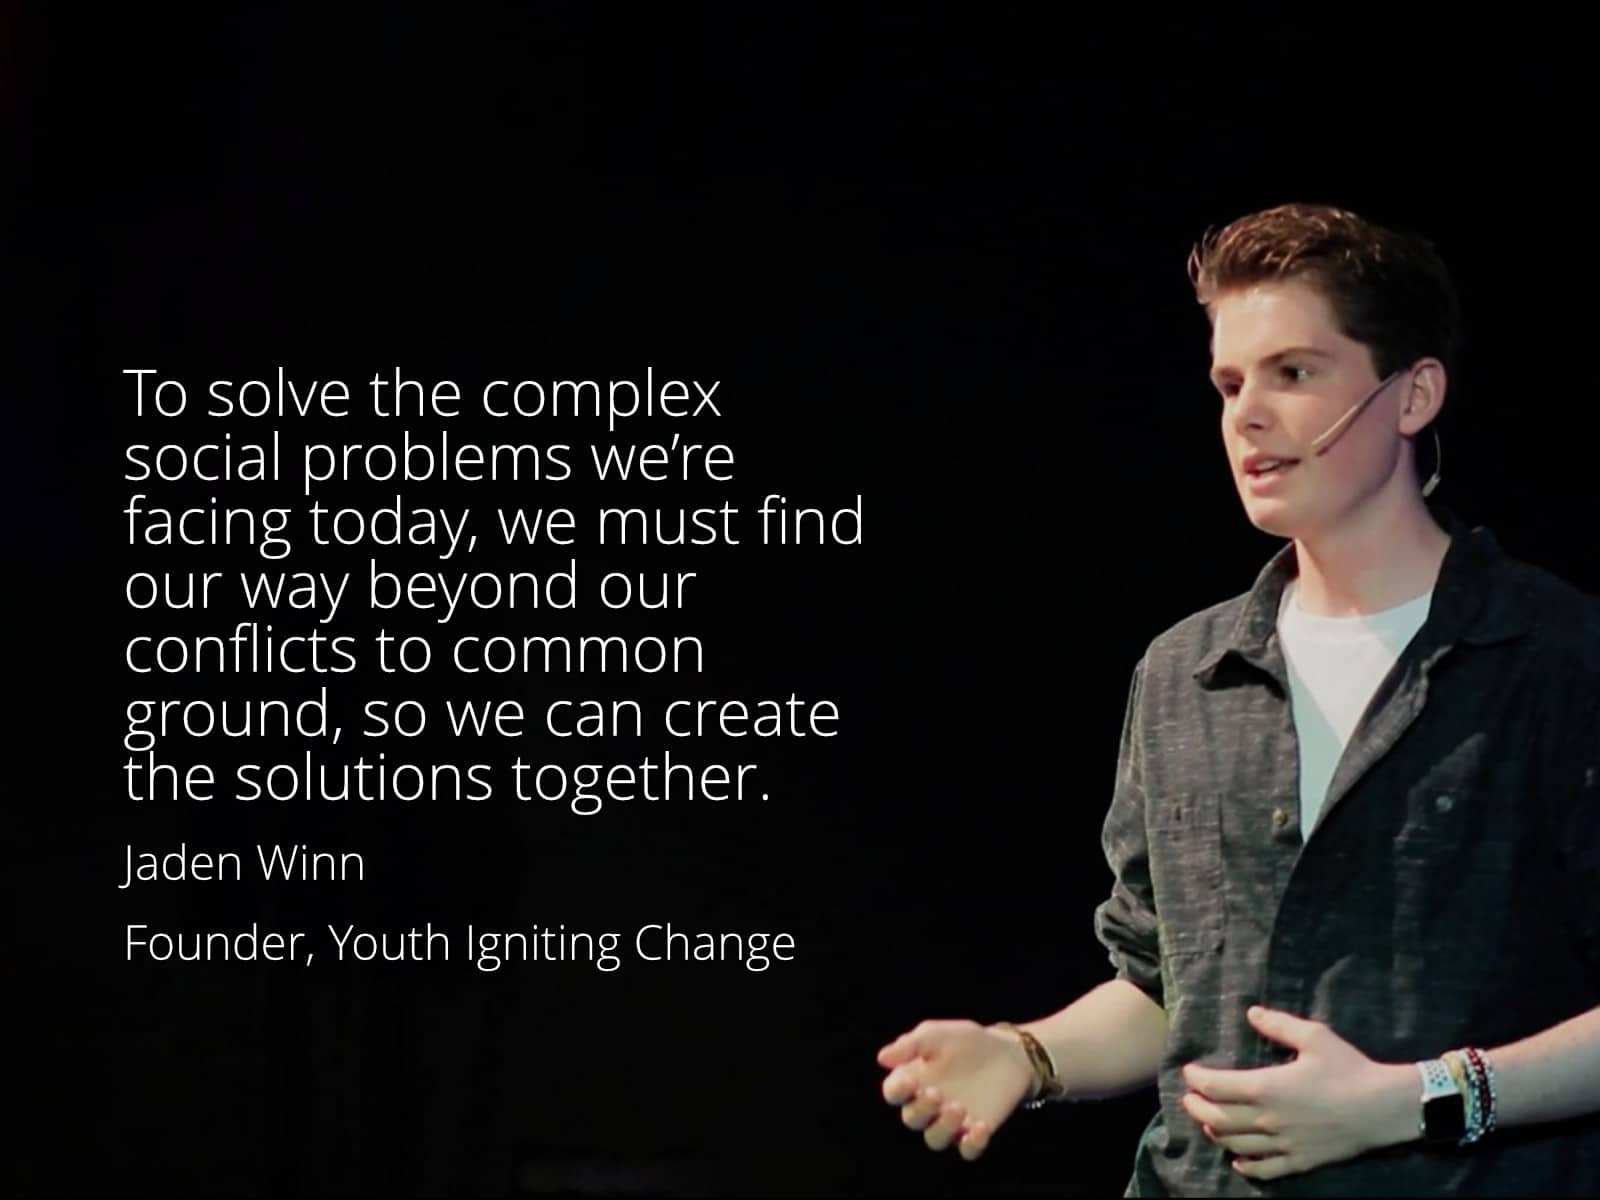 To solve the complex social problems we're facing today, we must find our way beyond our conflicts to common ground, so we can create the solutions together. Jaden Winn Founder, Youth Igniting Change